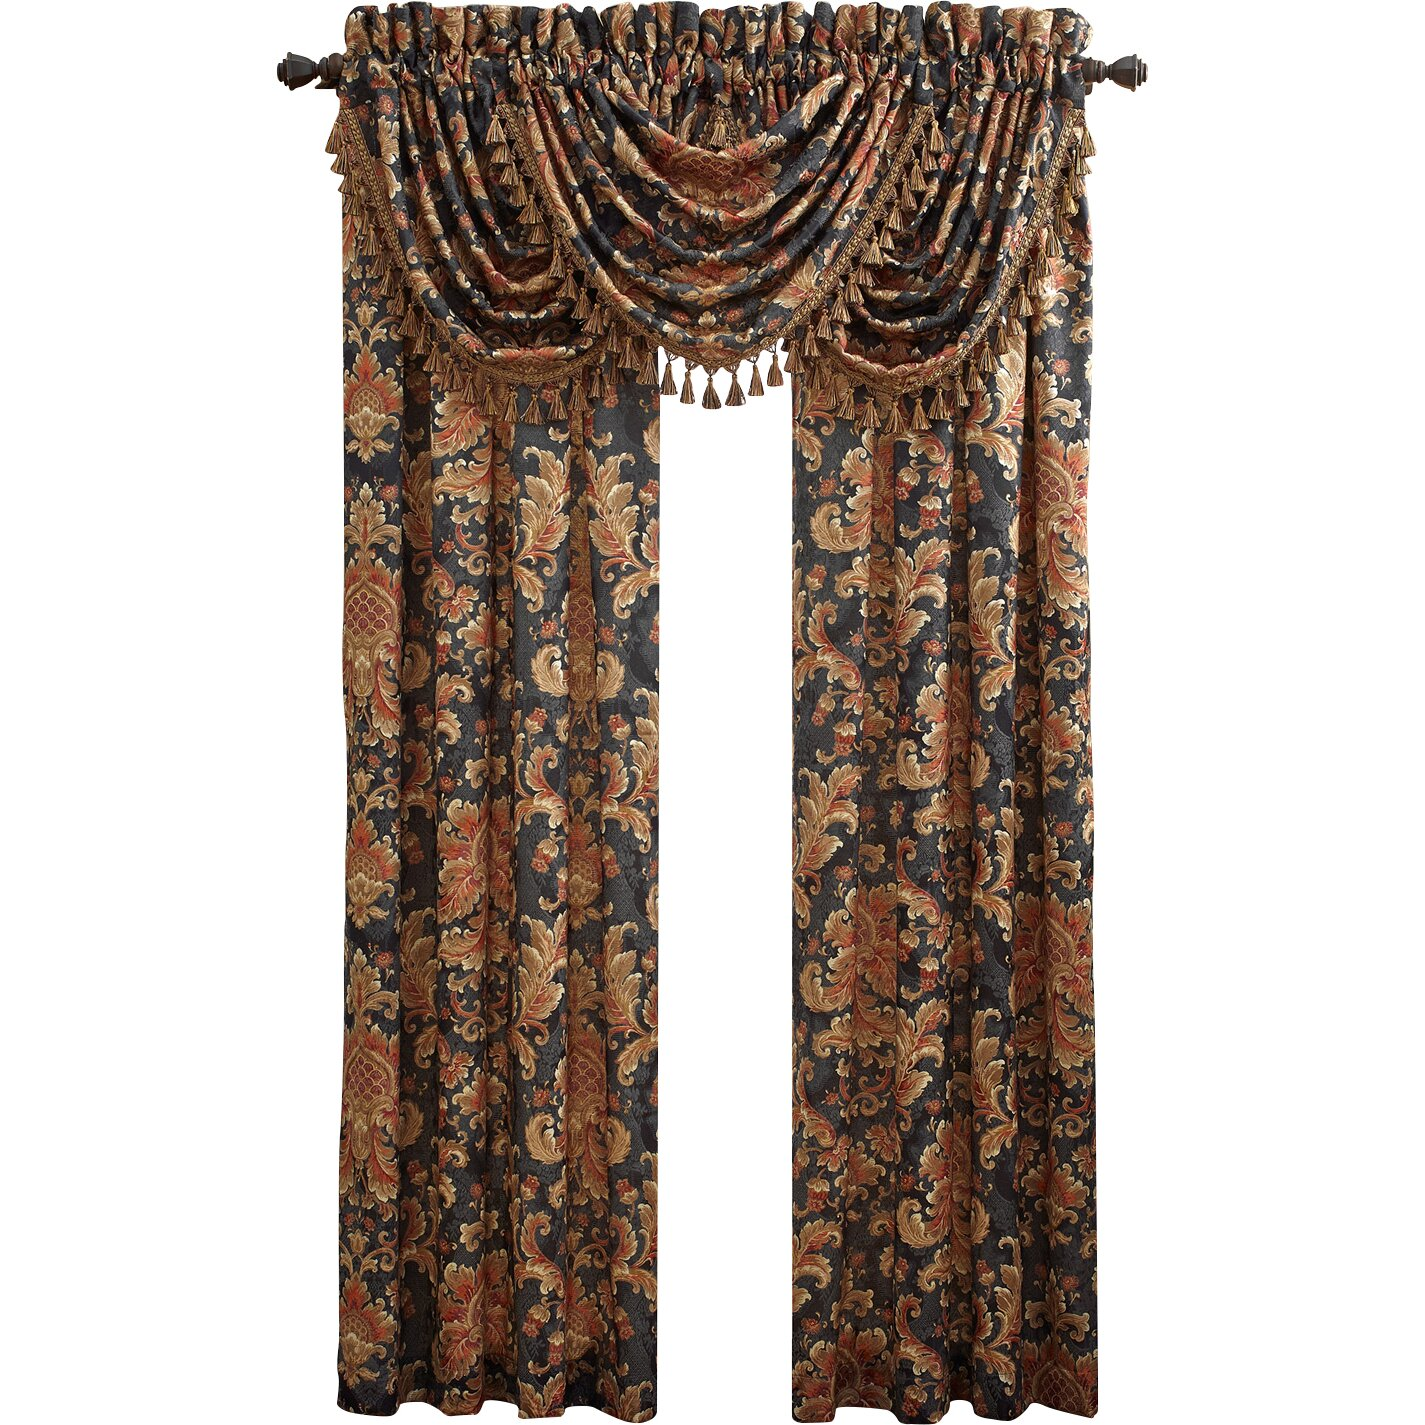 Croscill Serafina Waterfall Swag 48 Quot Curtain Valance